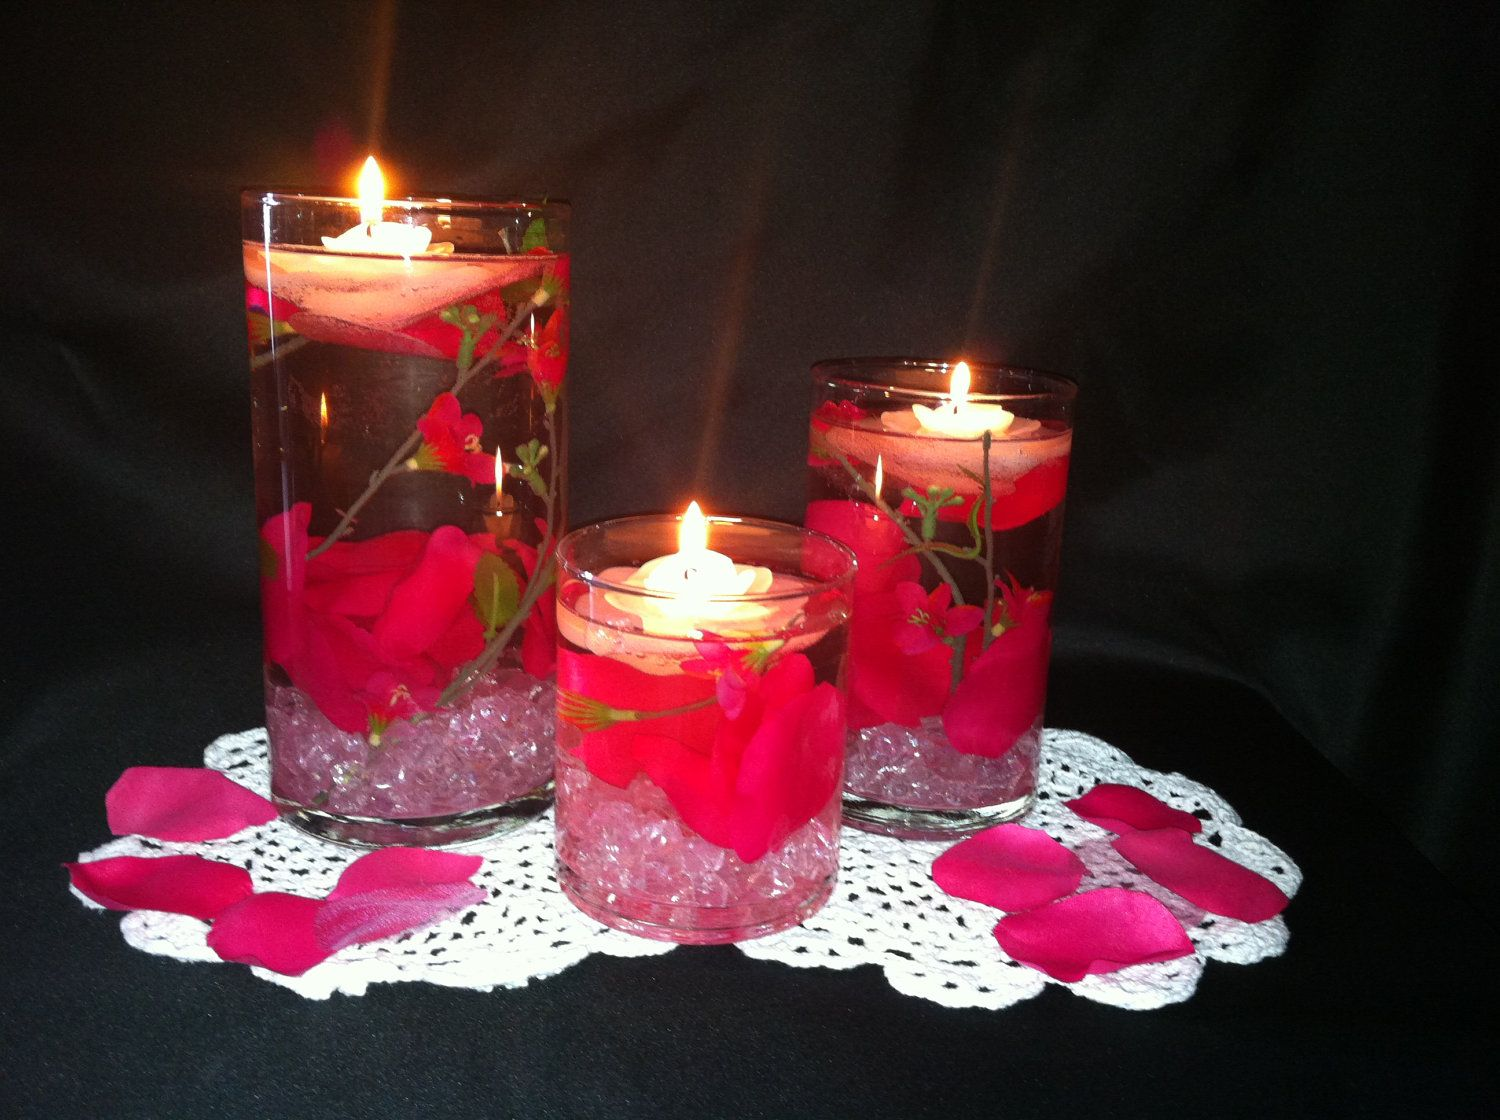 Candles in water wedding centerpieces for Floating flowers in water